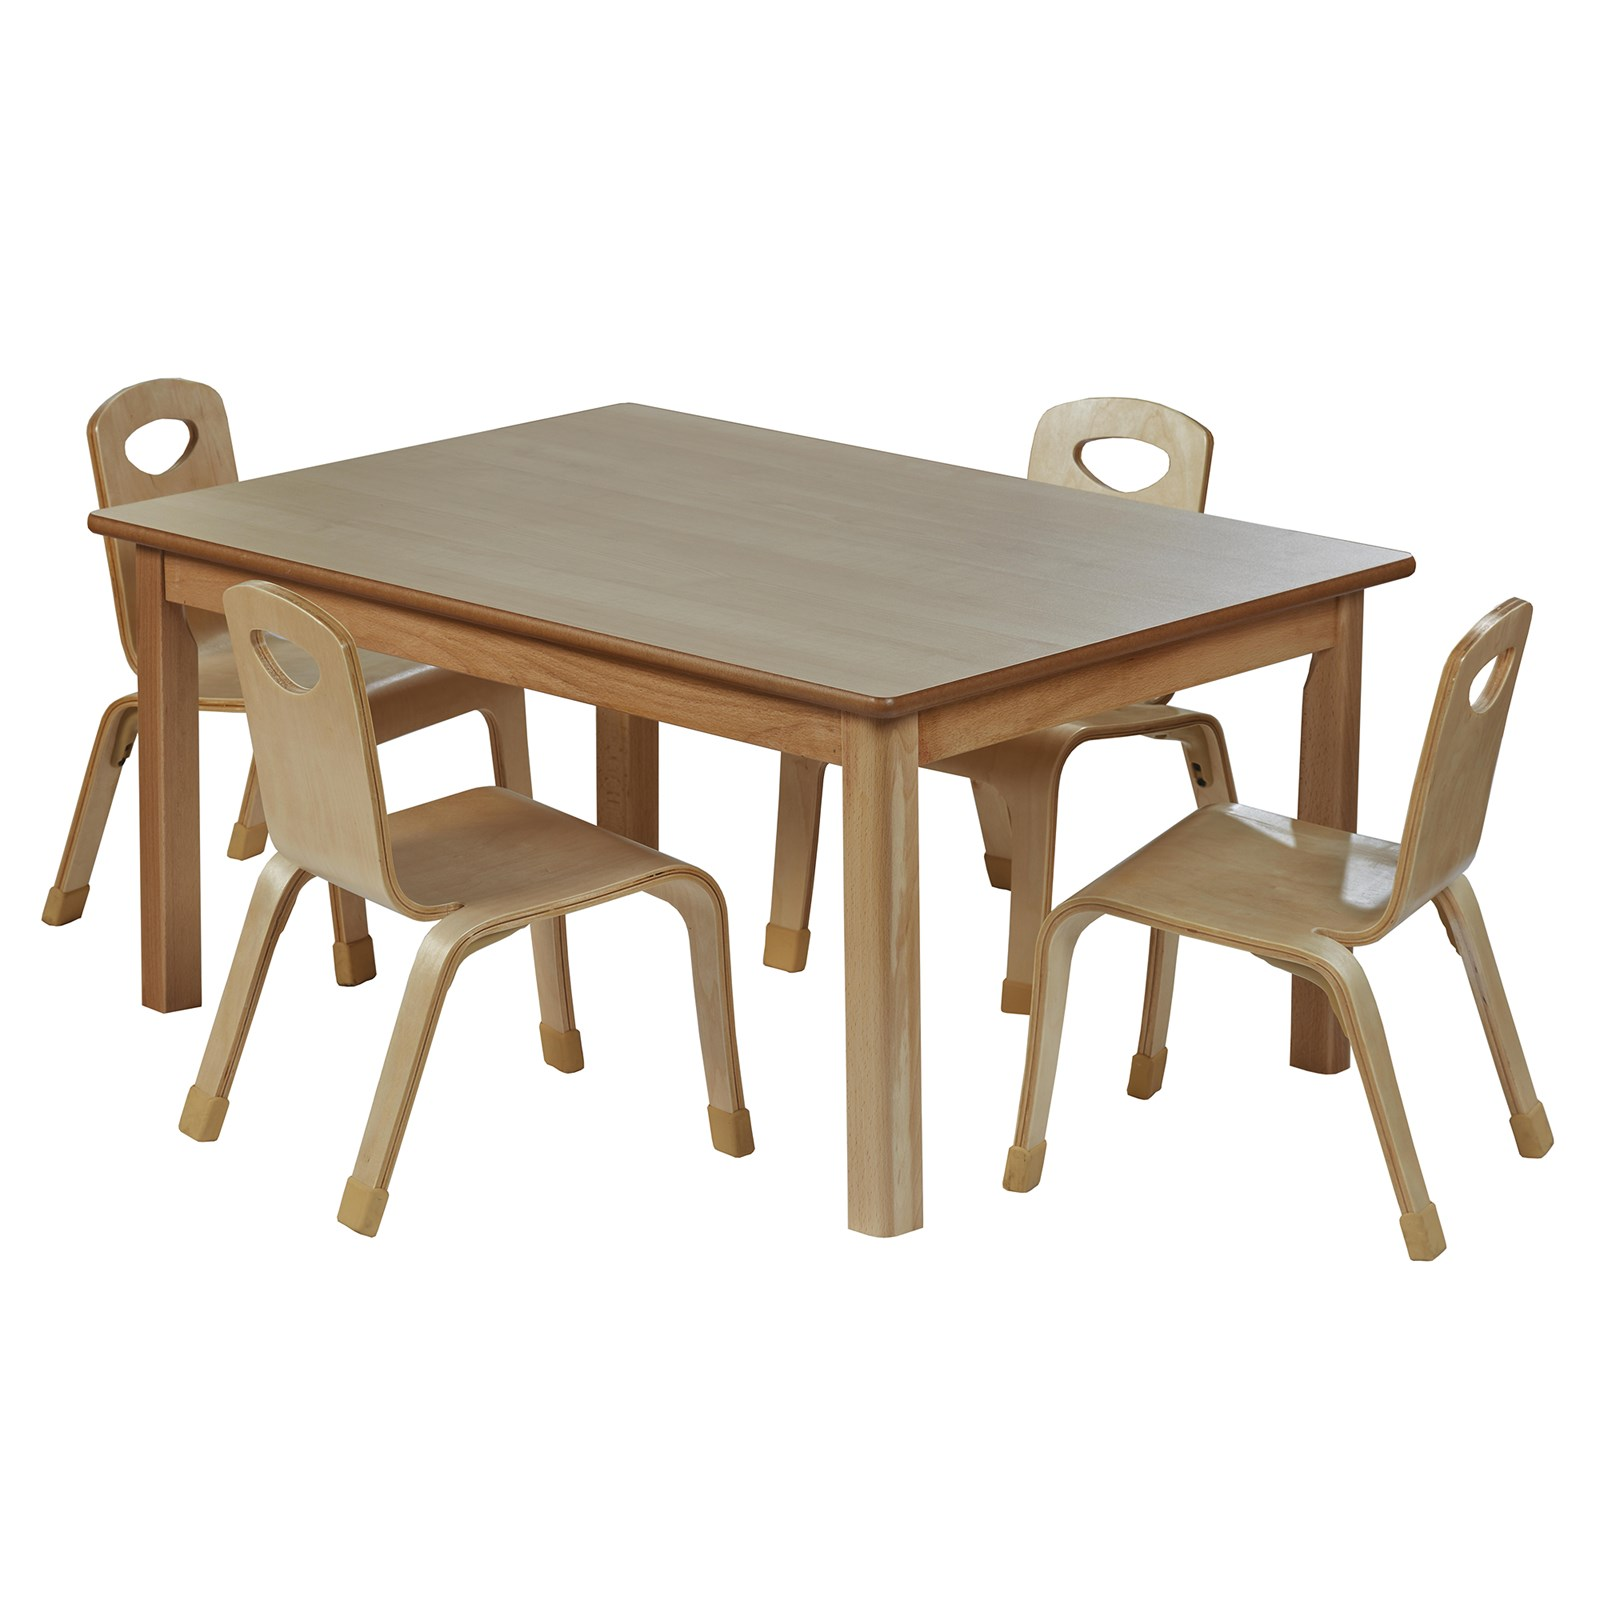 Playscapes Rect Table H46cm 4 Chairs H31cm